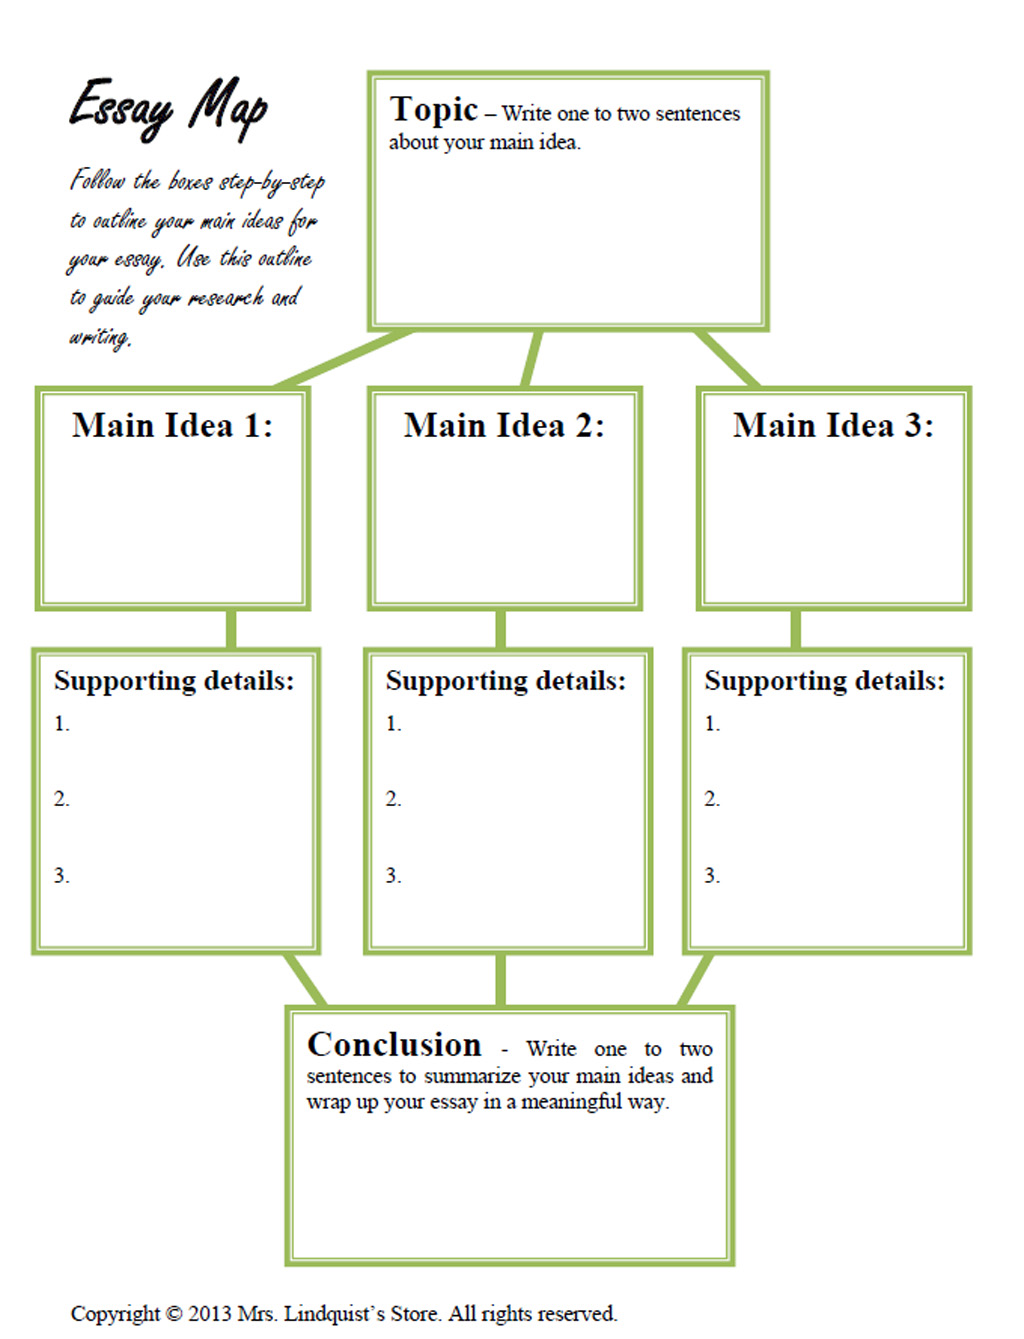 expository writing graphic organizer Yet another useful and easy-to-use organizer that will help you organize your thoughts and notes for your expository writing the bottom line: no matter which form of writing you decide on, or are required to do for school or work or whatever, you will want to use a graphic organizer to make your life easier.